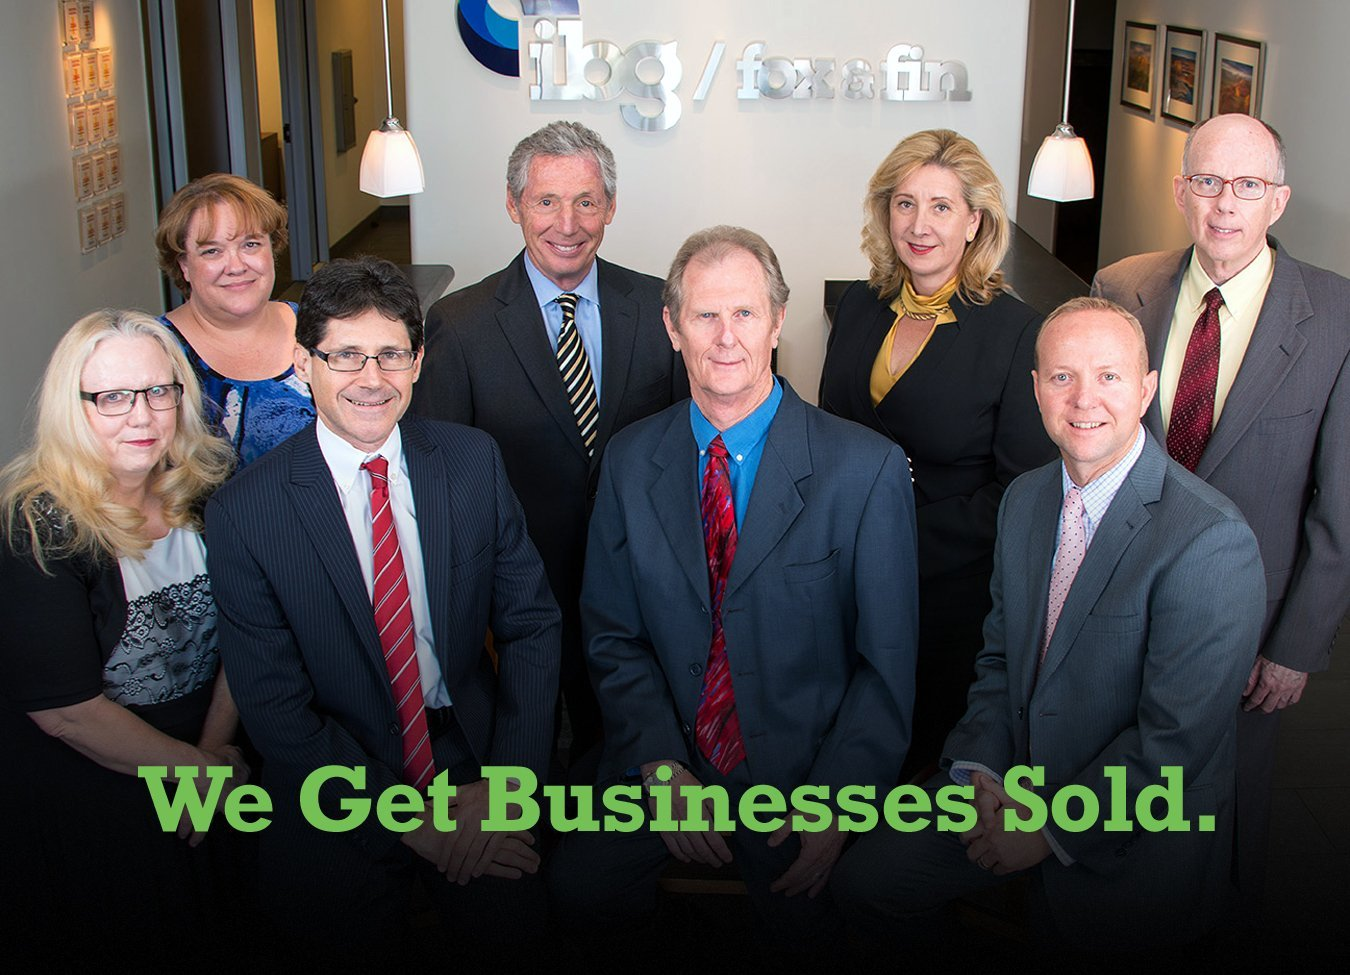 We Get Businesses Sold: Phoenix-Scottsdale M&A Advisors and Business Brokers